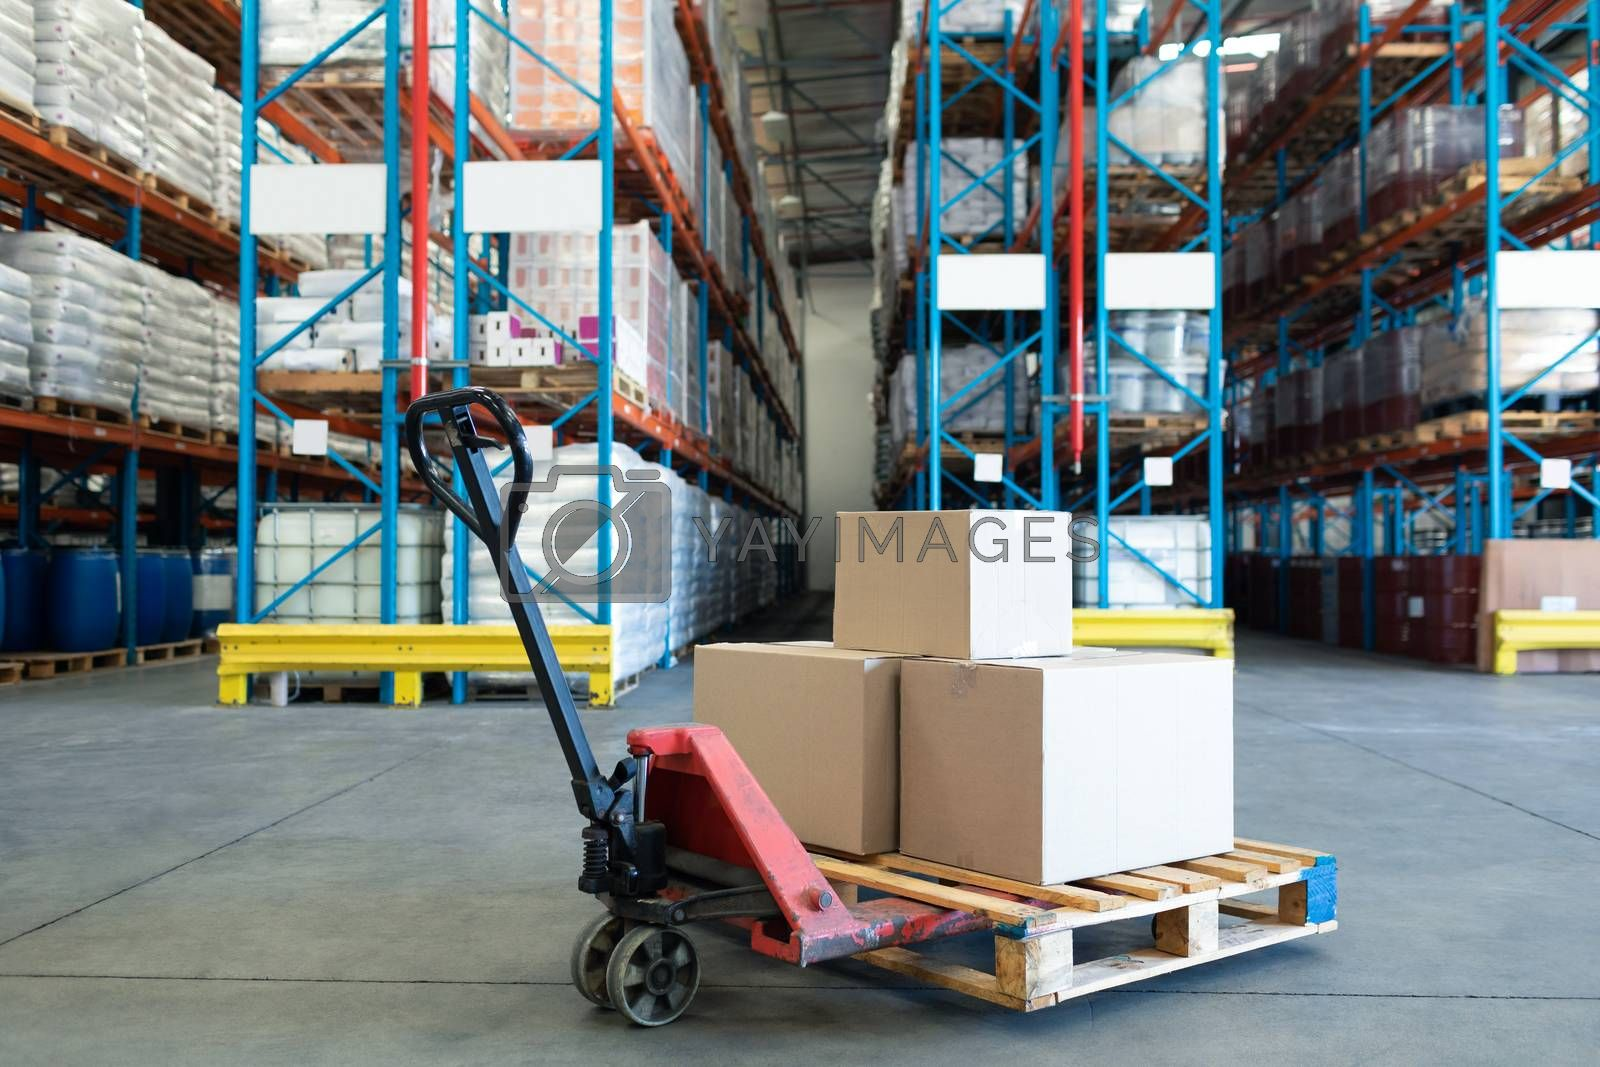 Cardboard boxes arranged on a pallet jack in warehouse. This is a freight transportation and distribution warehouse. Industrial and industrial workers concept